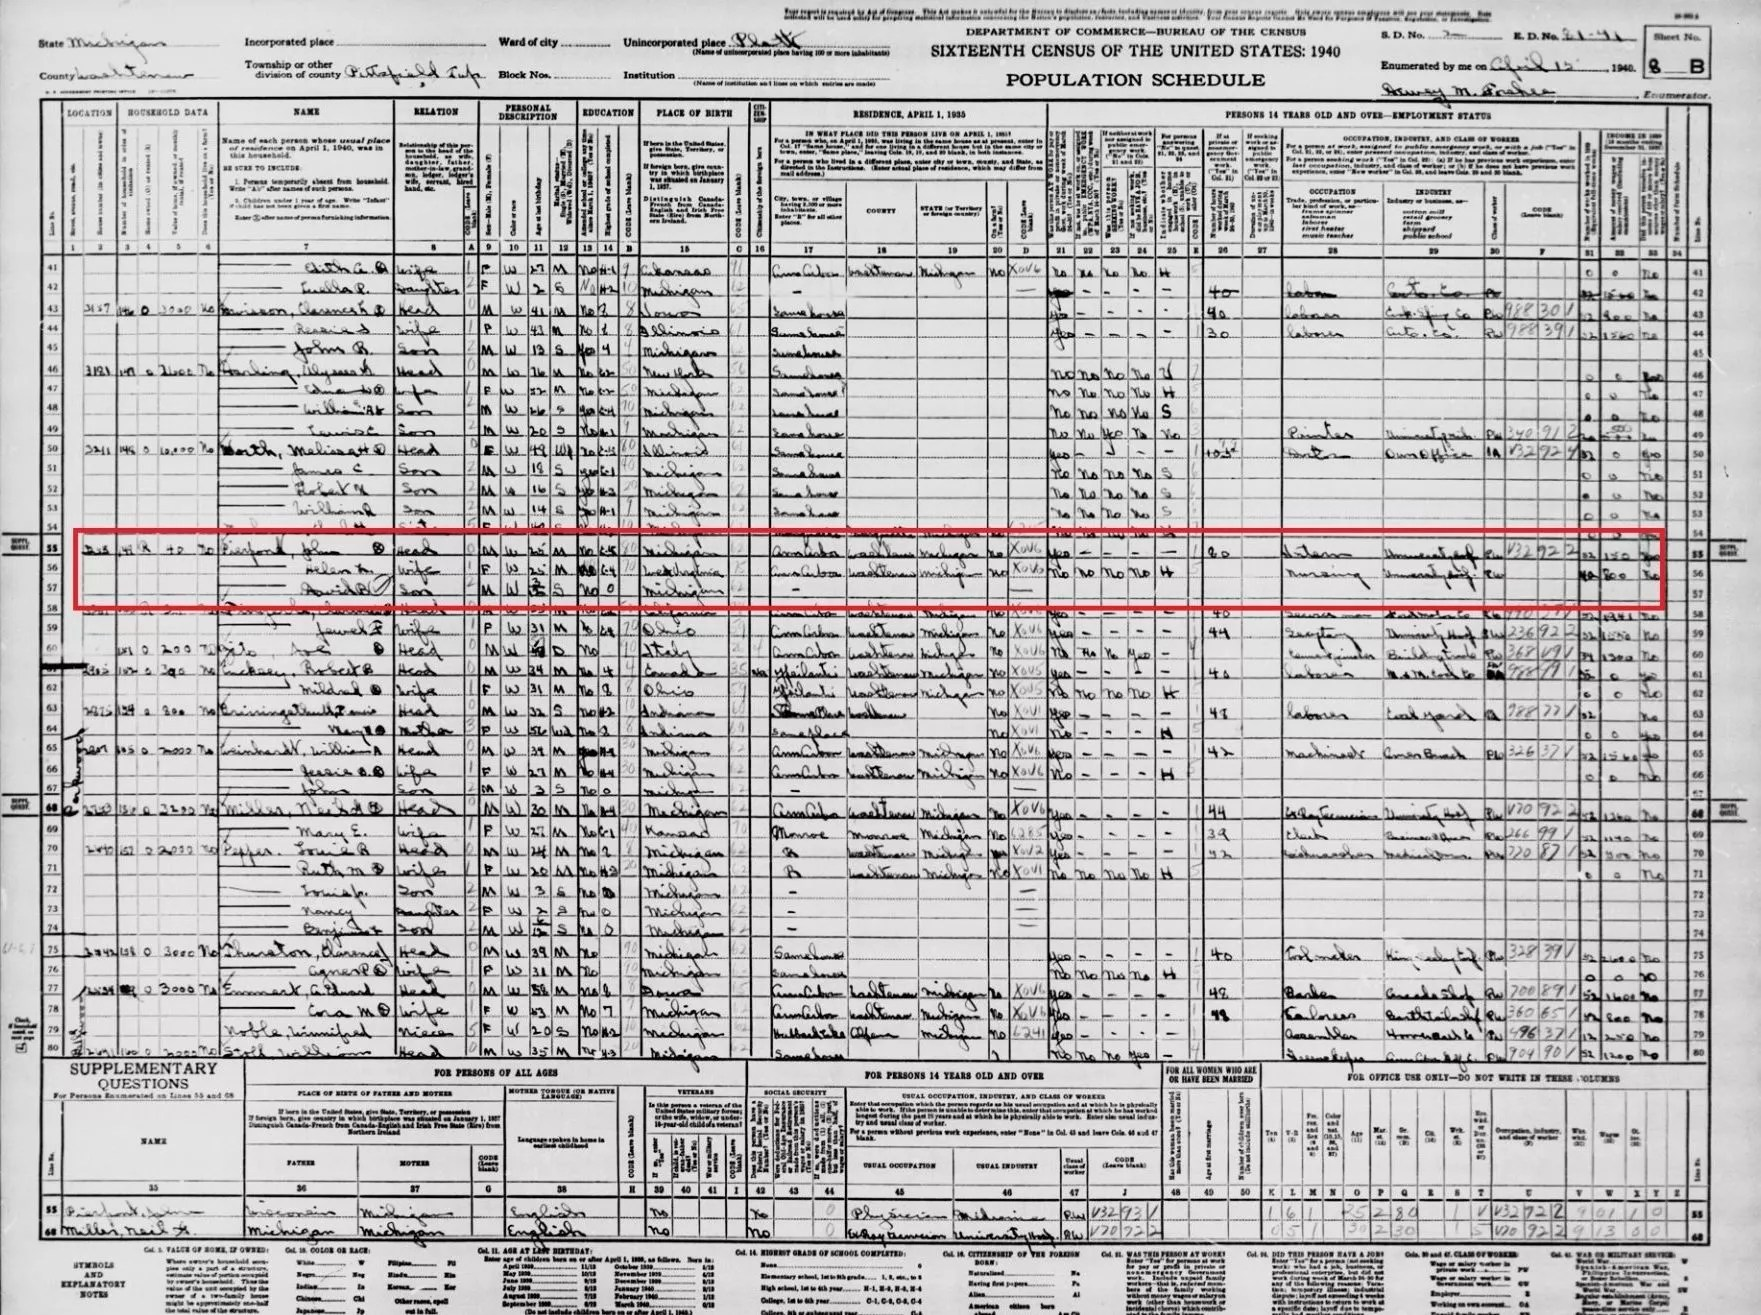 1940 Census Record of Dr. John Pierpont